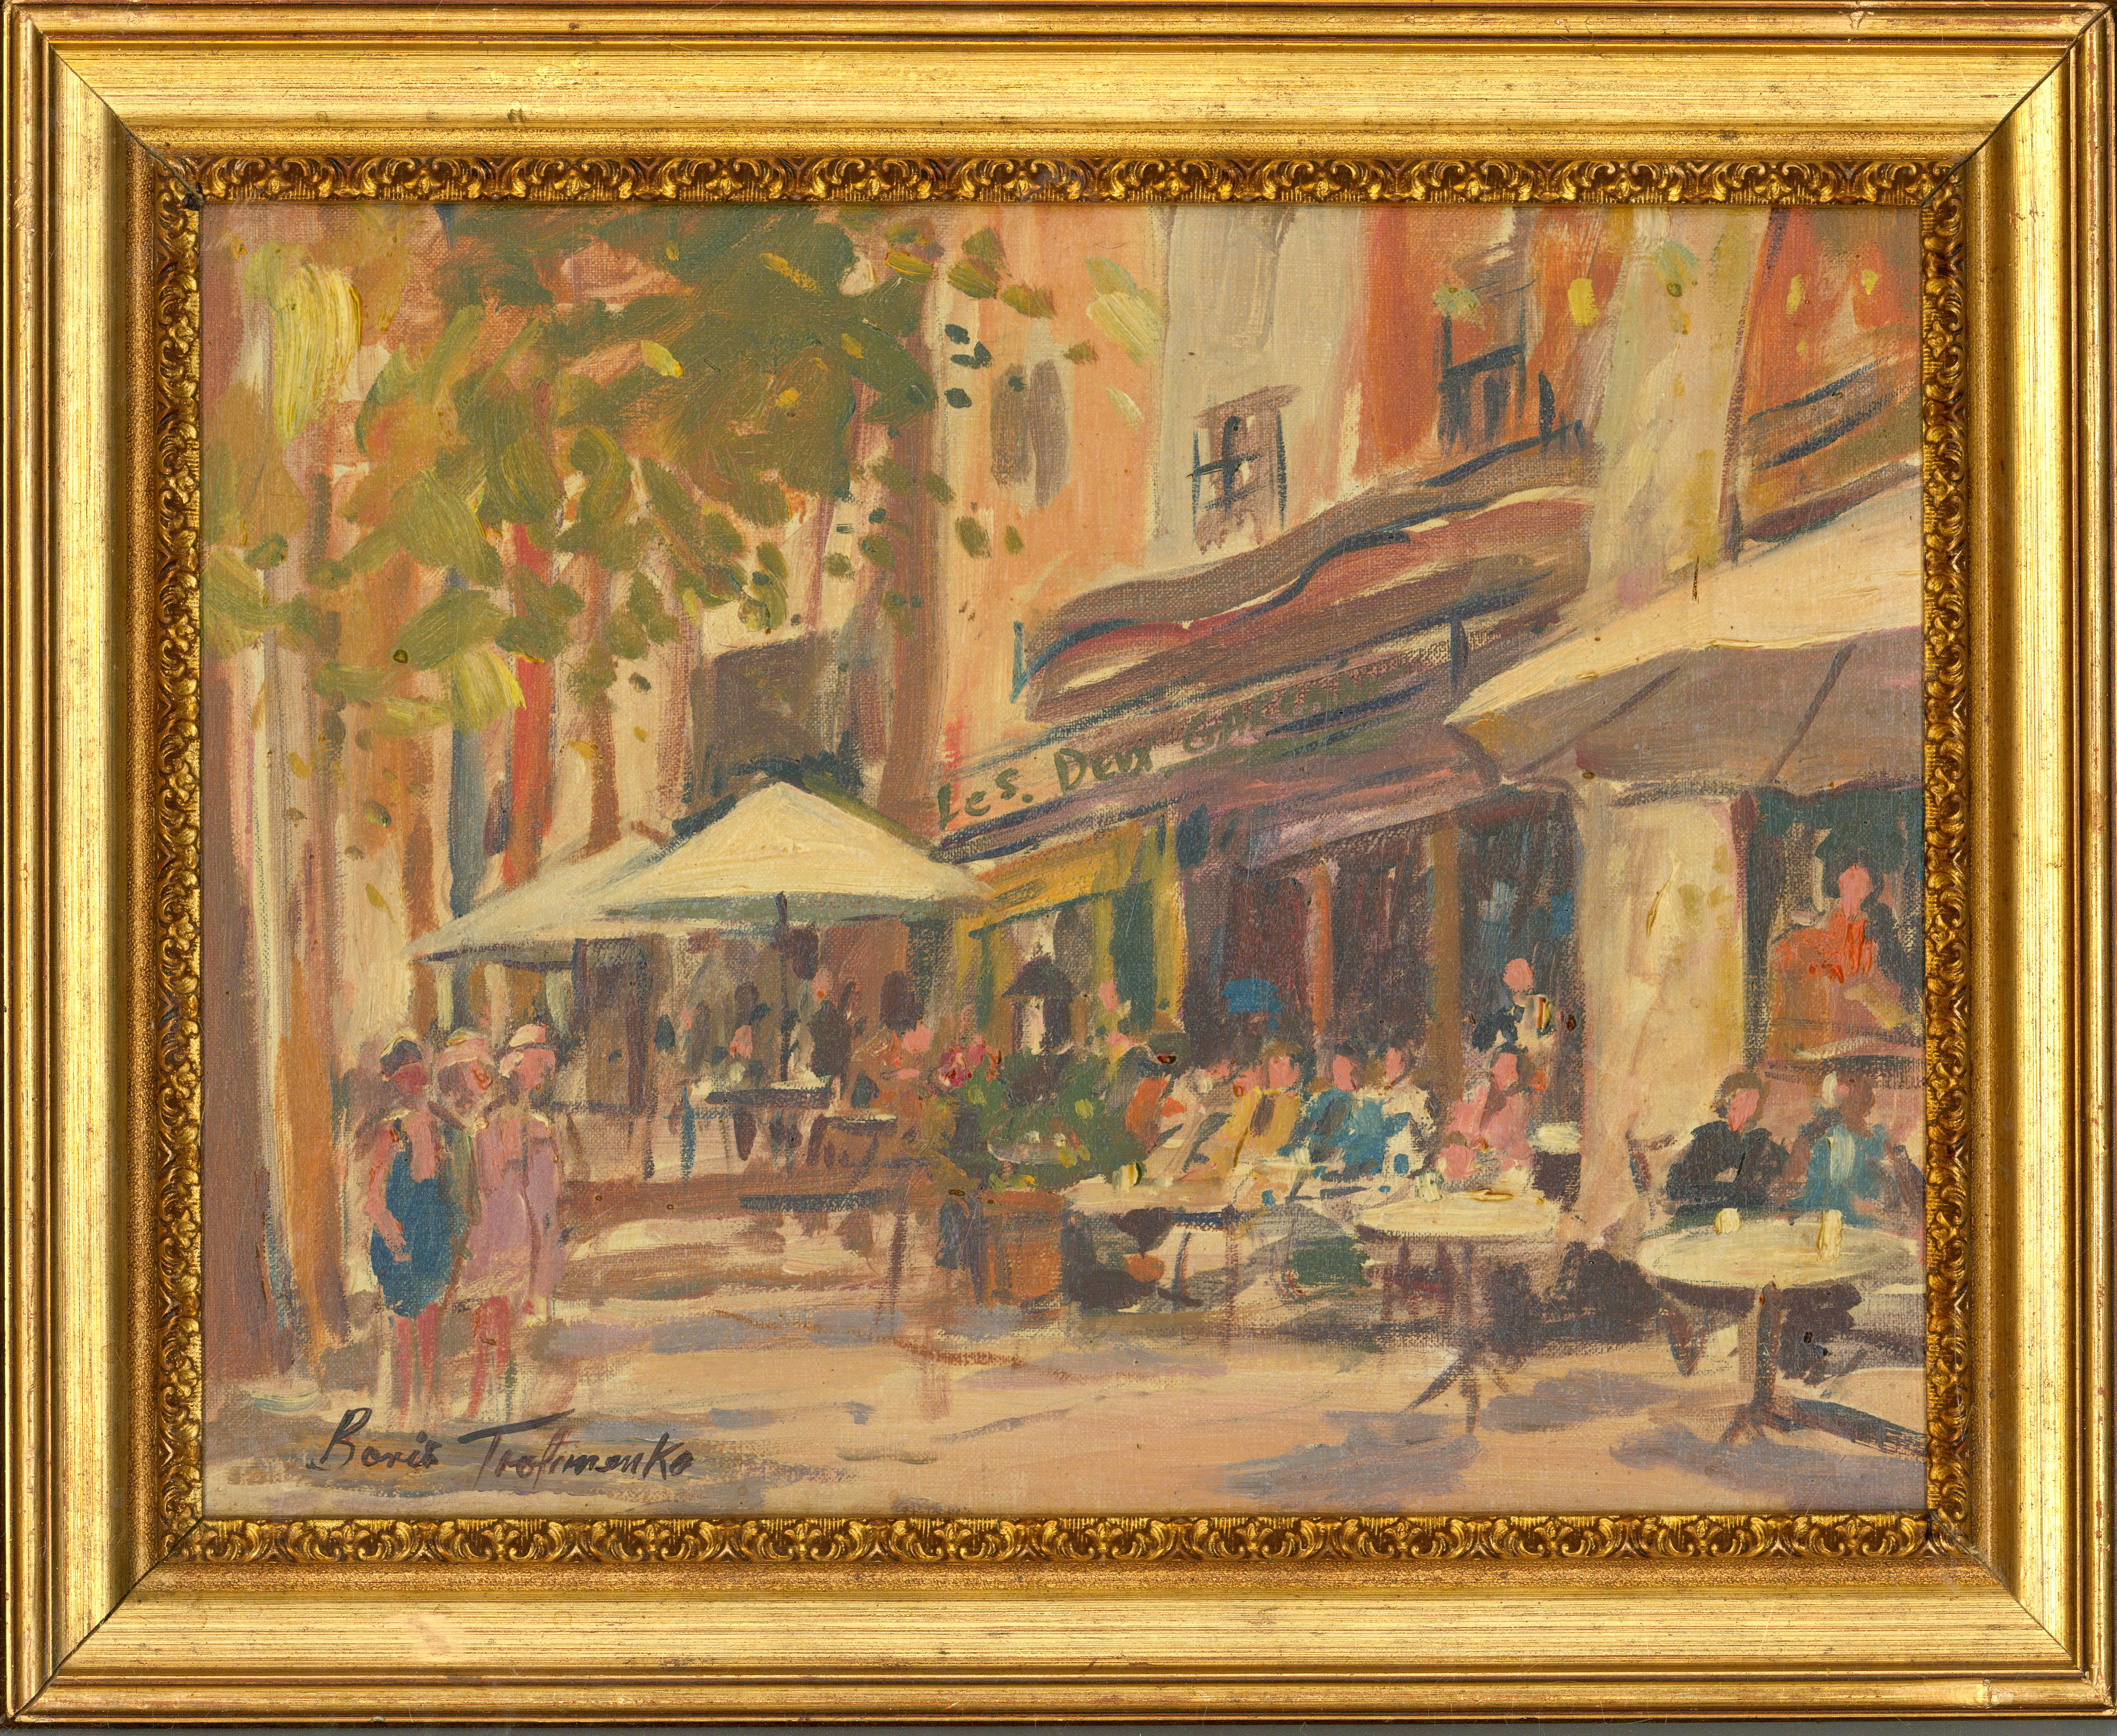 Boris Trofimenko - Signed & Framed Early 20th Century Oil, French Cafes